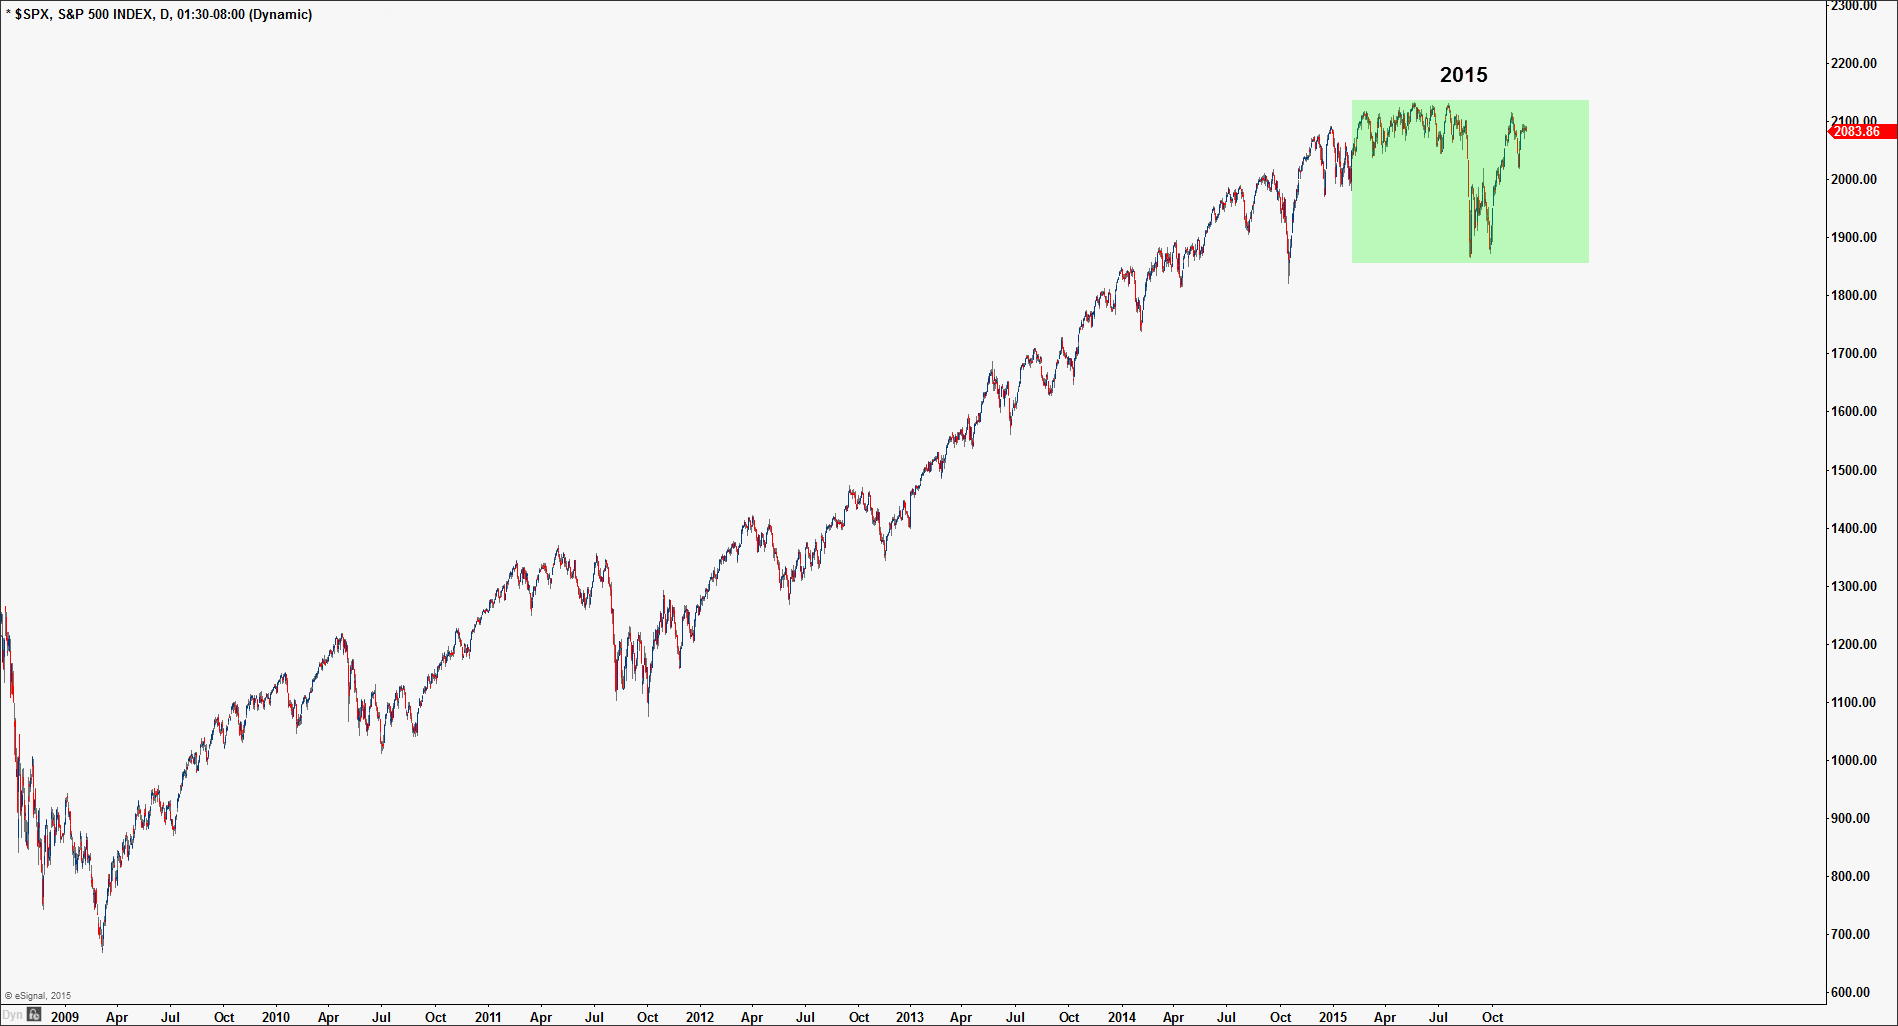 Chart 2: Current S&P500 bull market